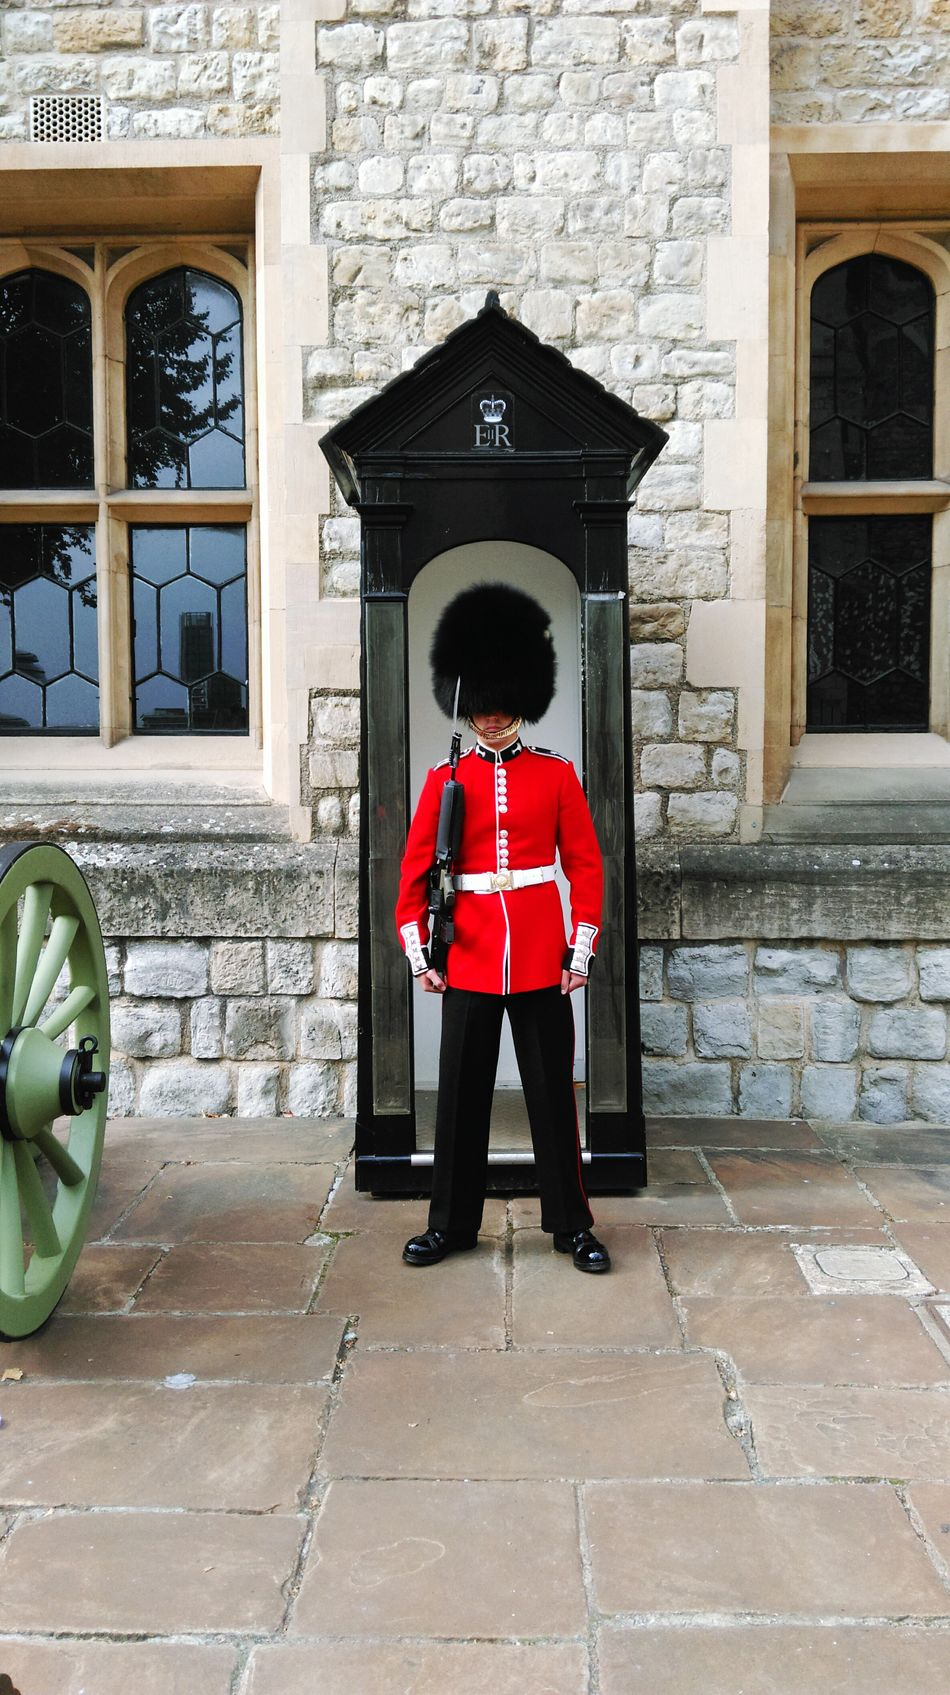 London Lifestyle London Londonlife Military Uniform Red Arch London Tower Queens Guard Crown Jewels